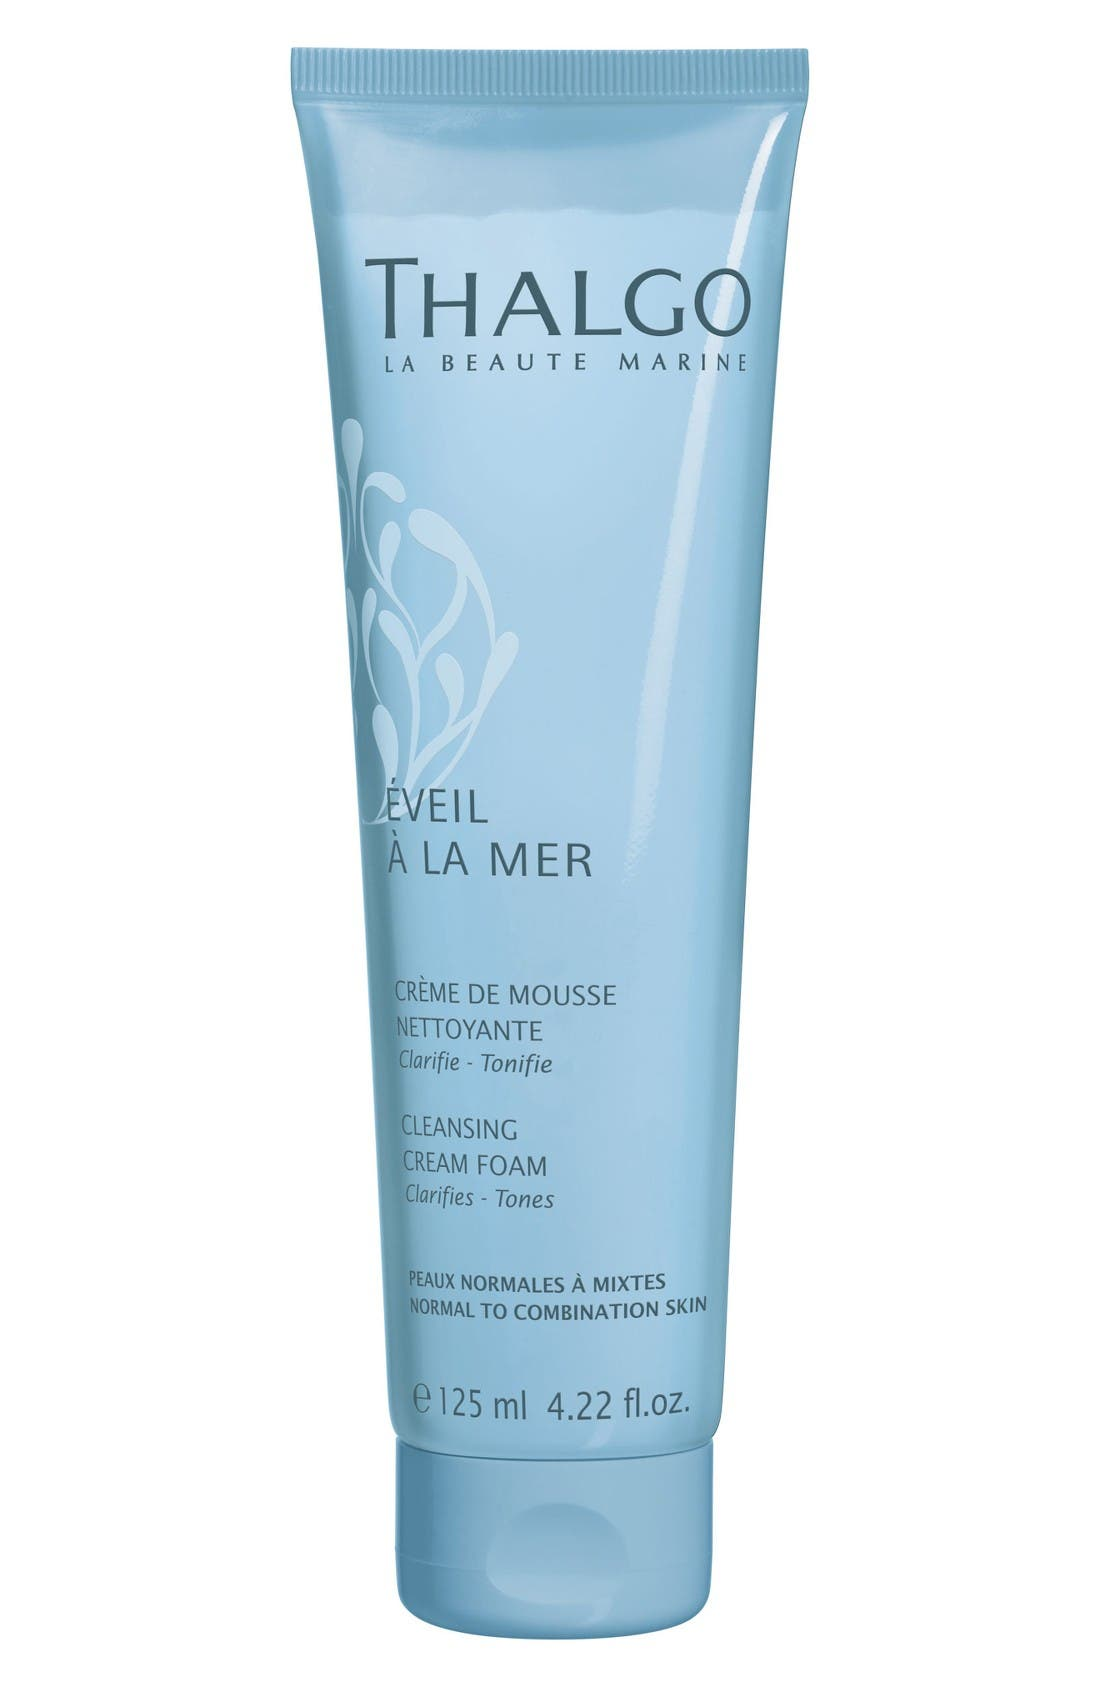 Thalgo Cleansing Cream Foam